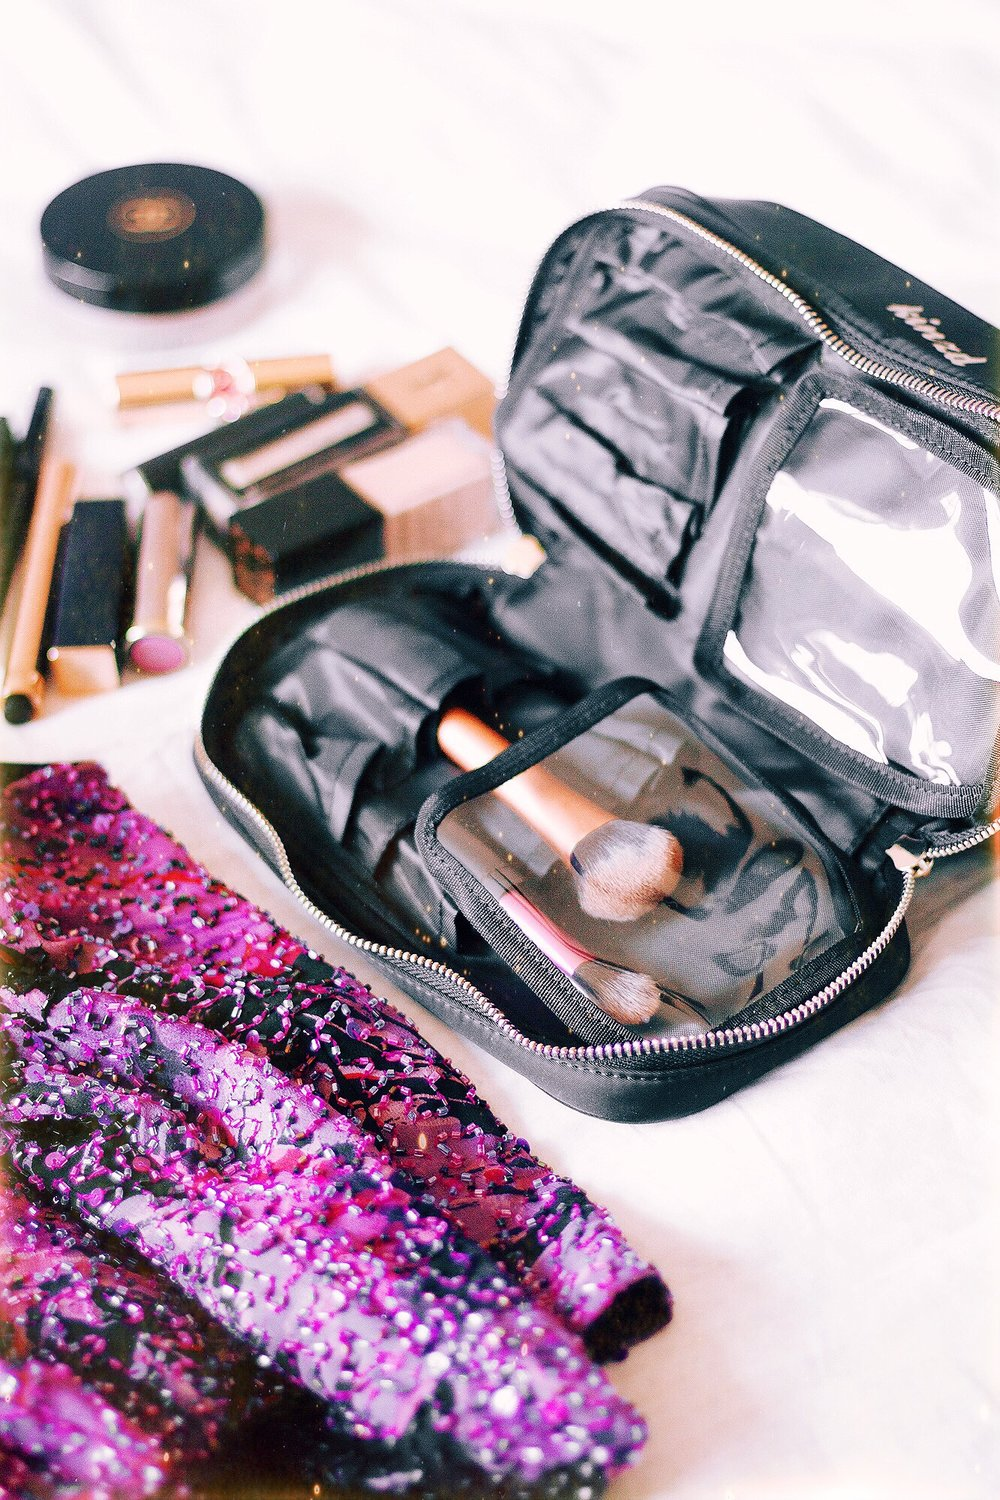 Makeup bag x Kate Caviar